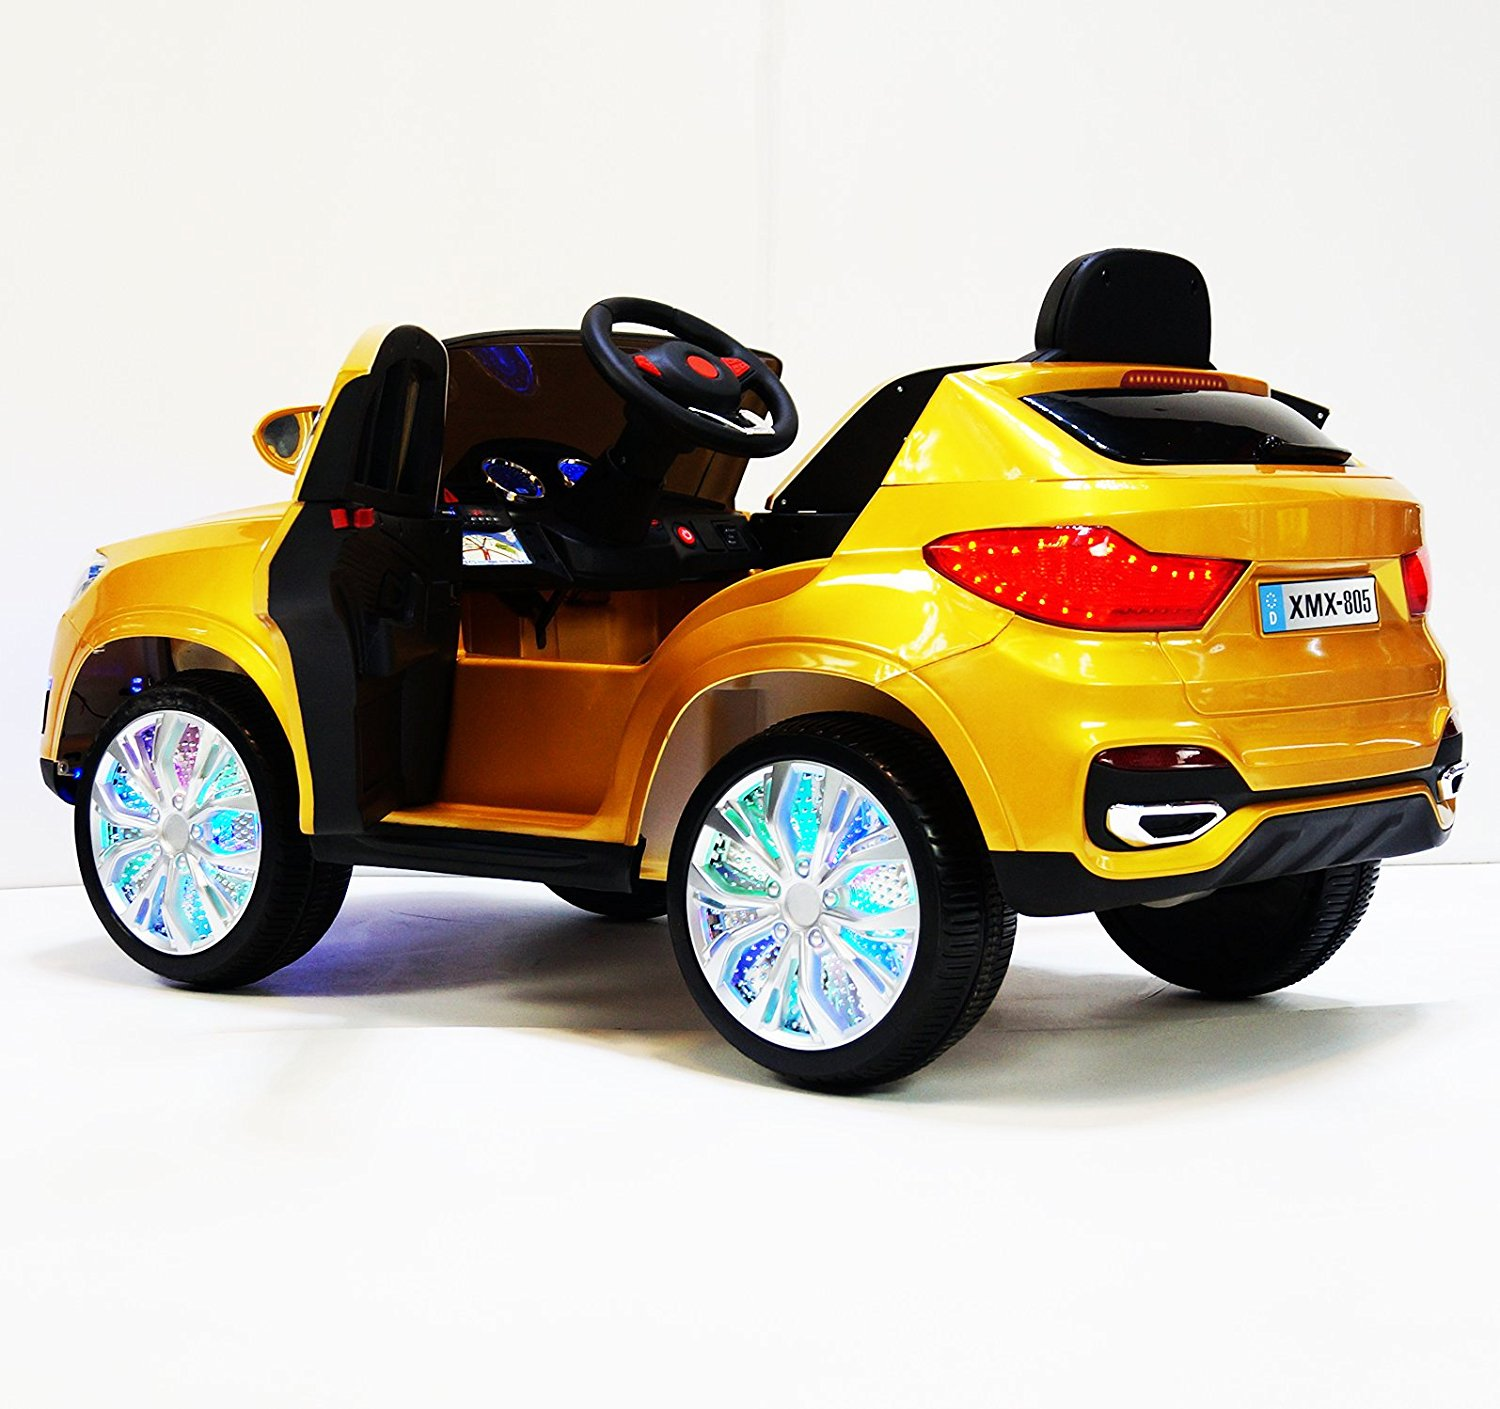 Ride on car AUDI style. Total 12v. Electric car for kids to ride from 2 to 6 years. Powered riding toys. 3 speed. Electric car Q7 with remote control. Battery operated car for kids. Two motors.